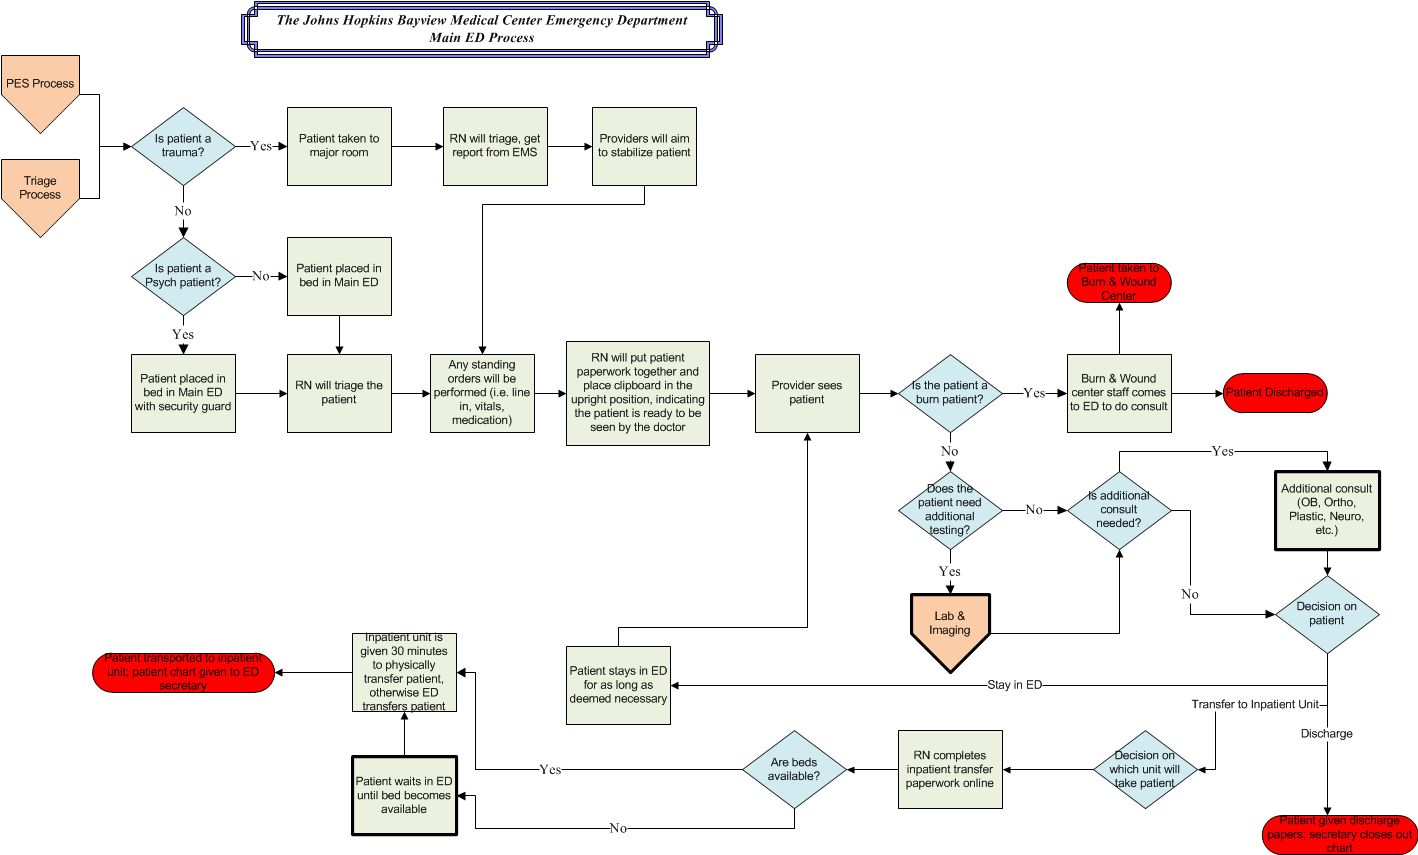 Bayview Process Model